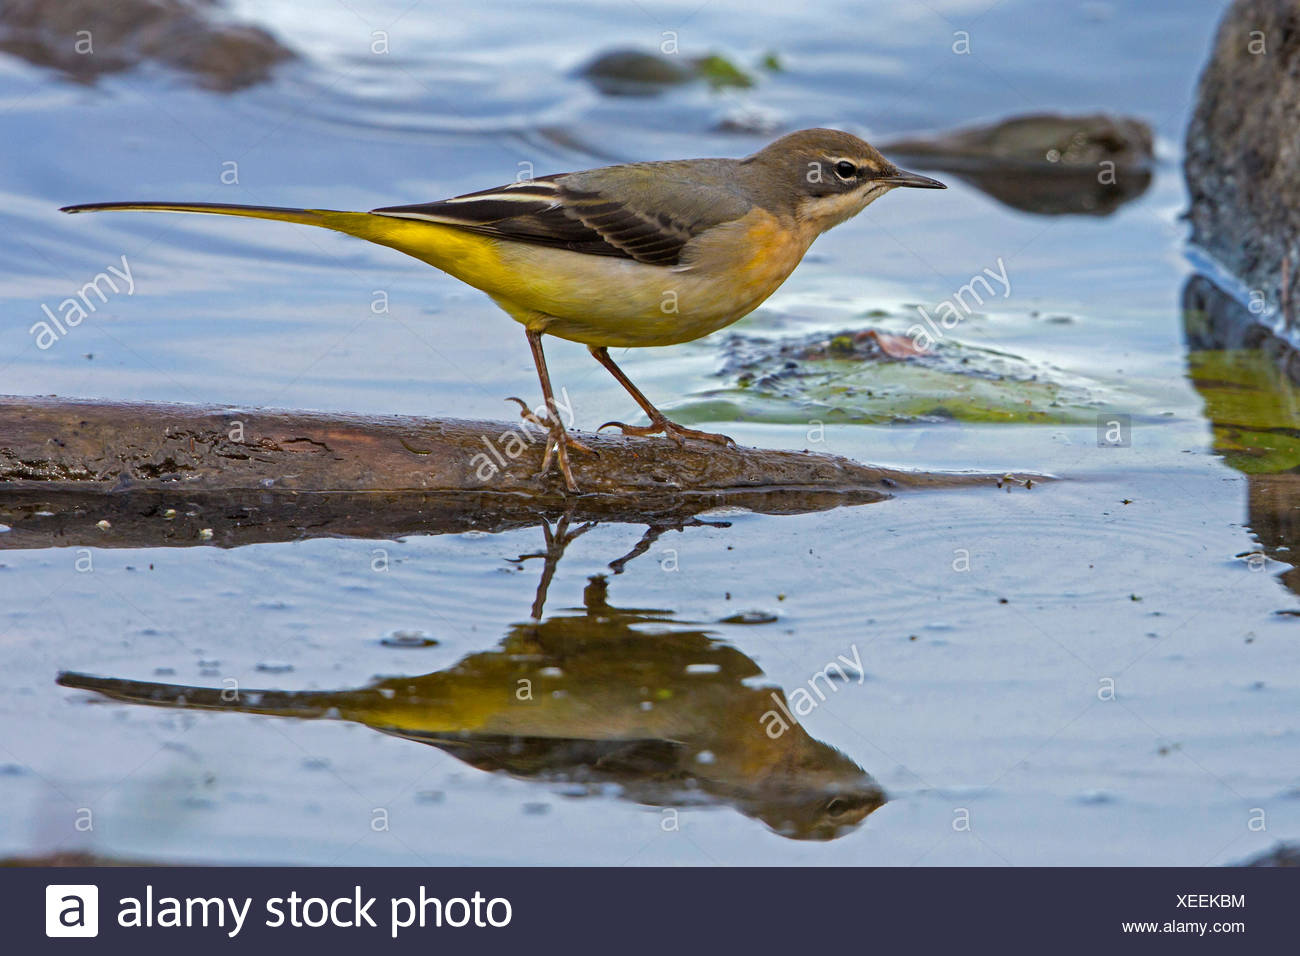 grey wagtail (Motacilla cinerea), in shallow water with mirror image, Germany, Bavaria, Lake Chiemsee - Stock Image